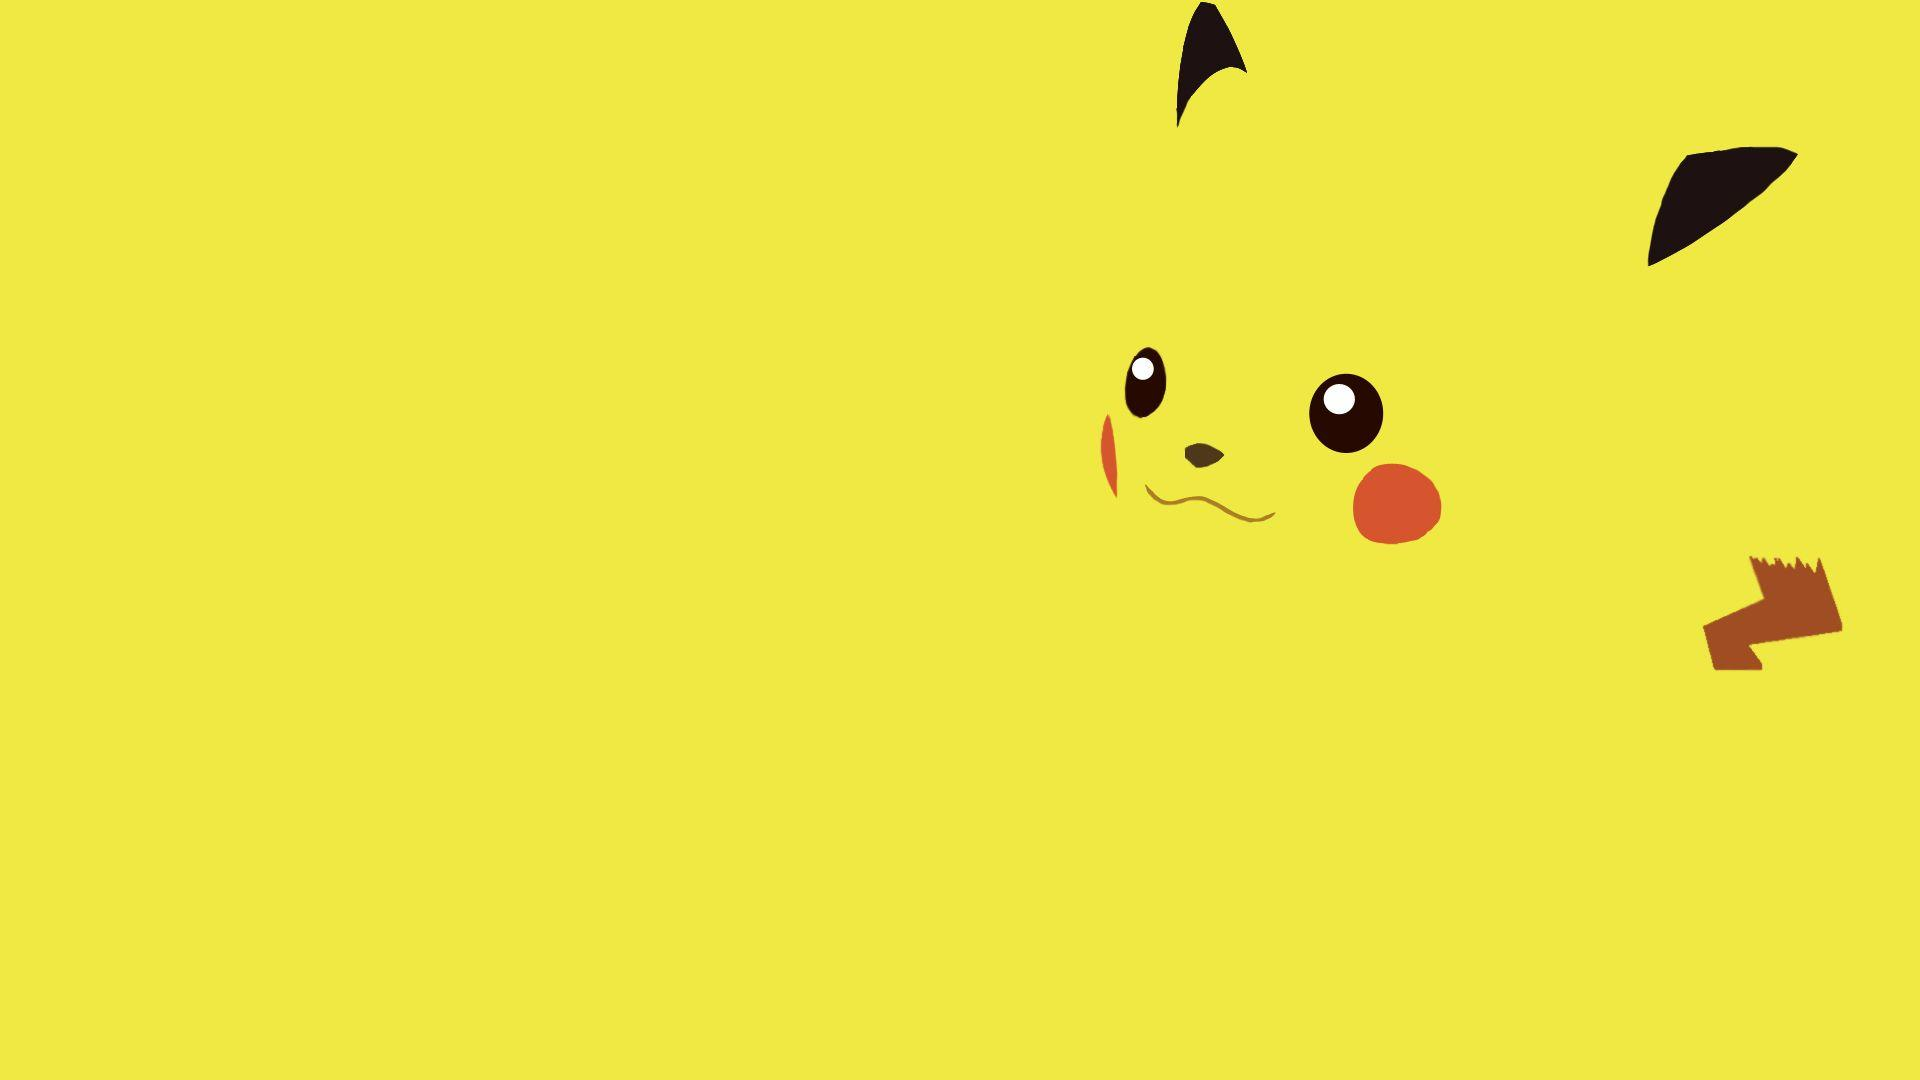 pikachu pokemon wallpaper - photo #14